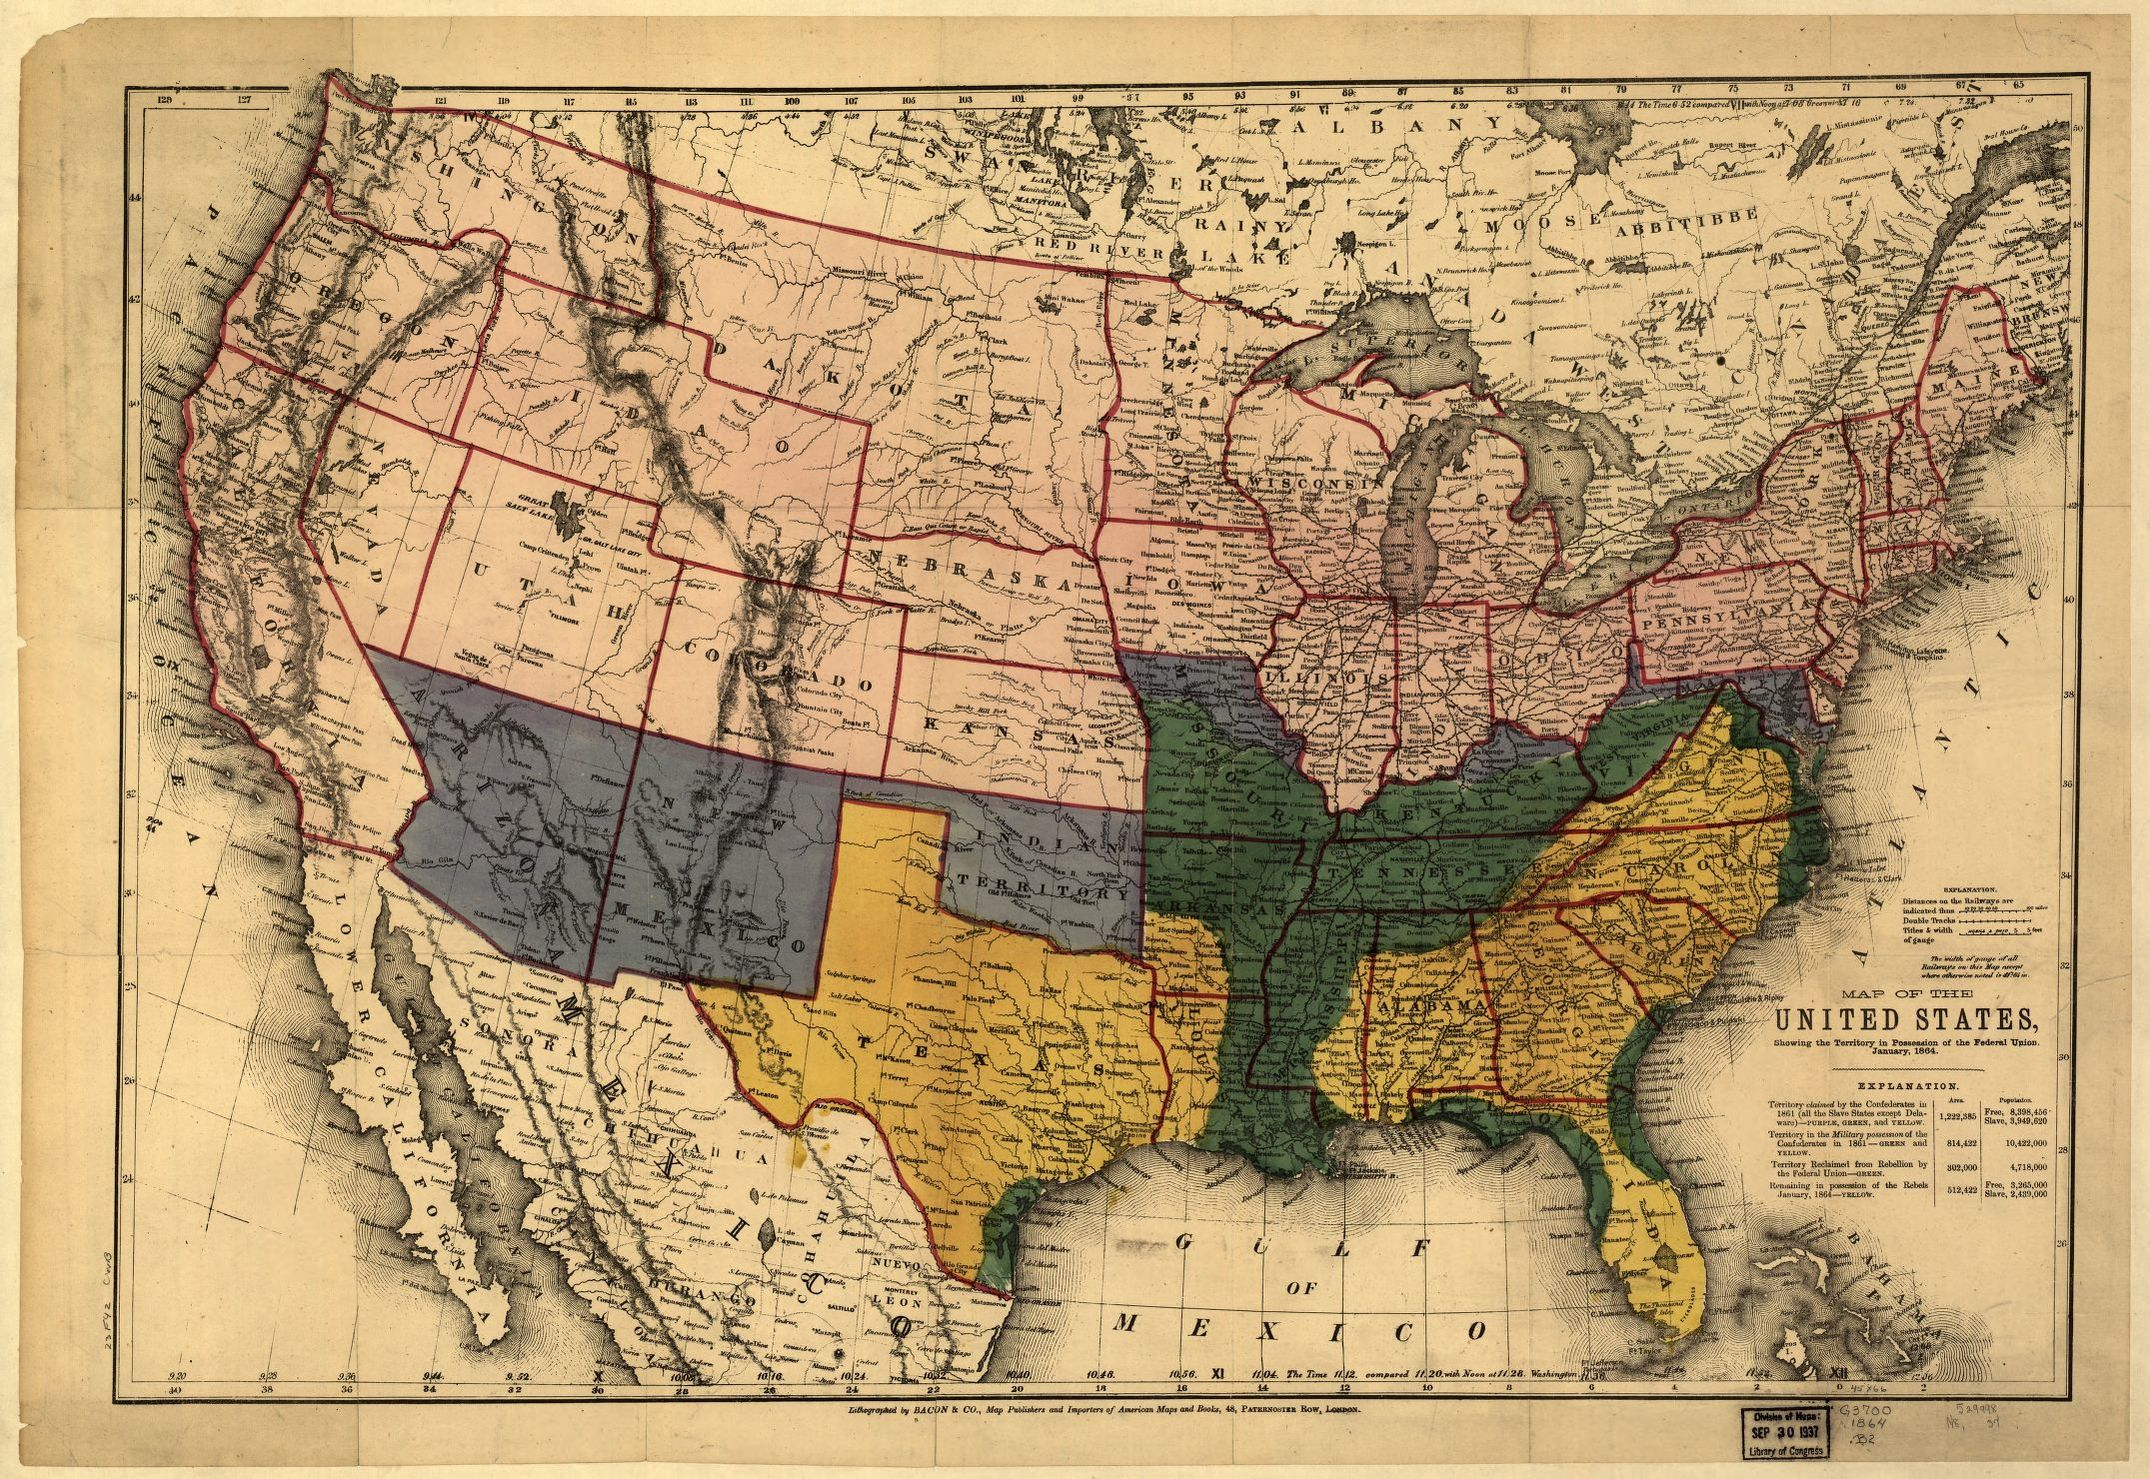 Map Of The United States Showing The Territory In